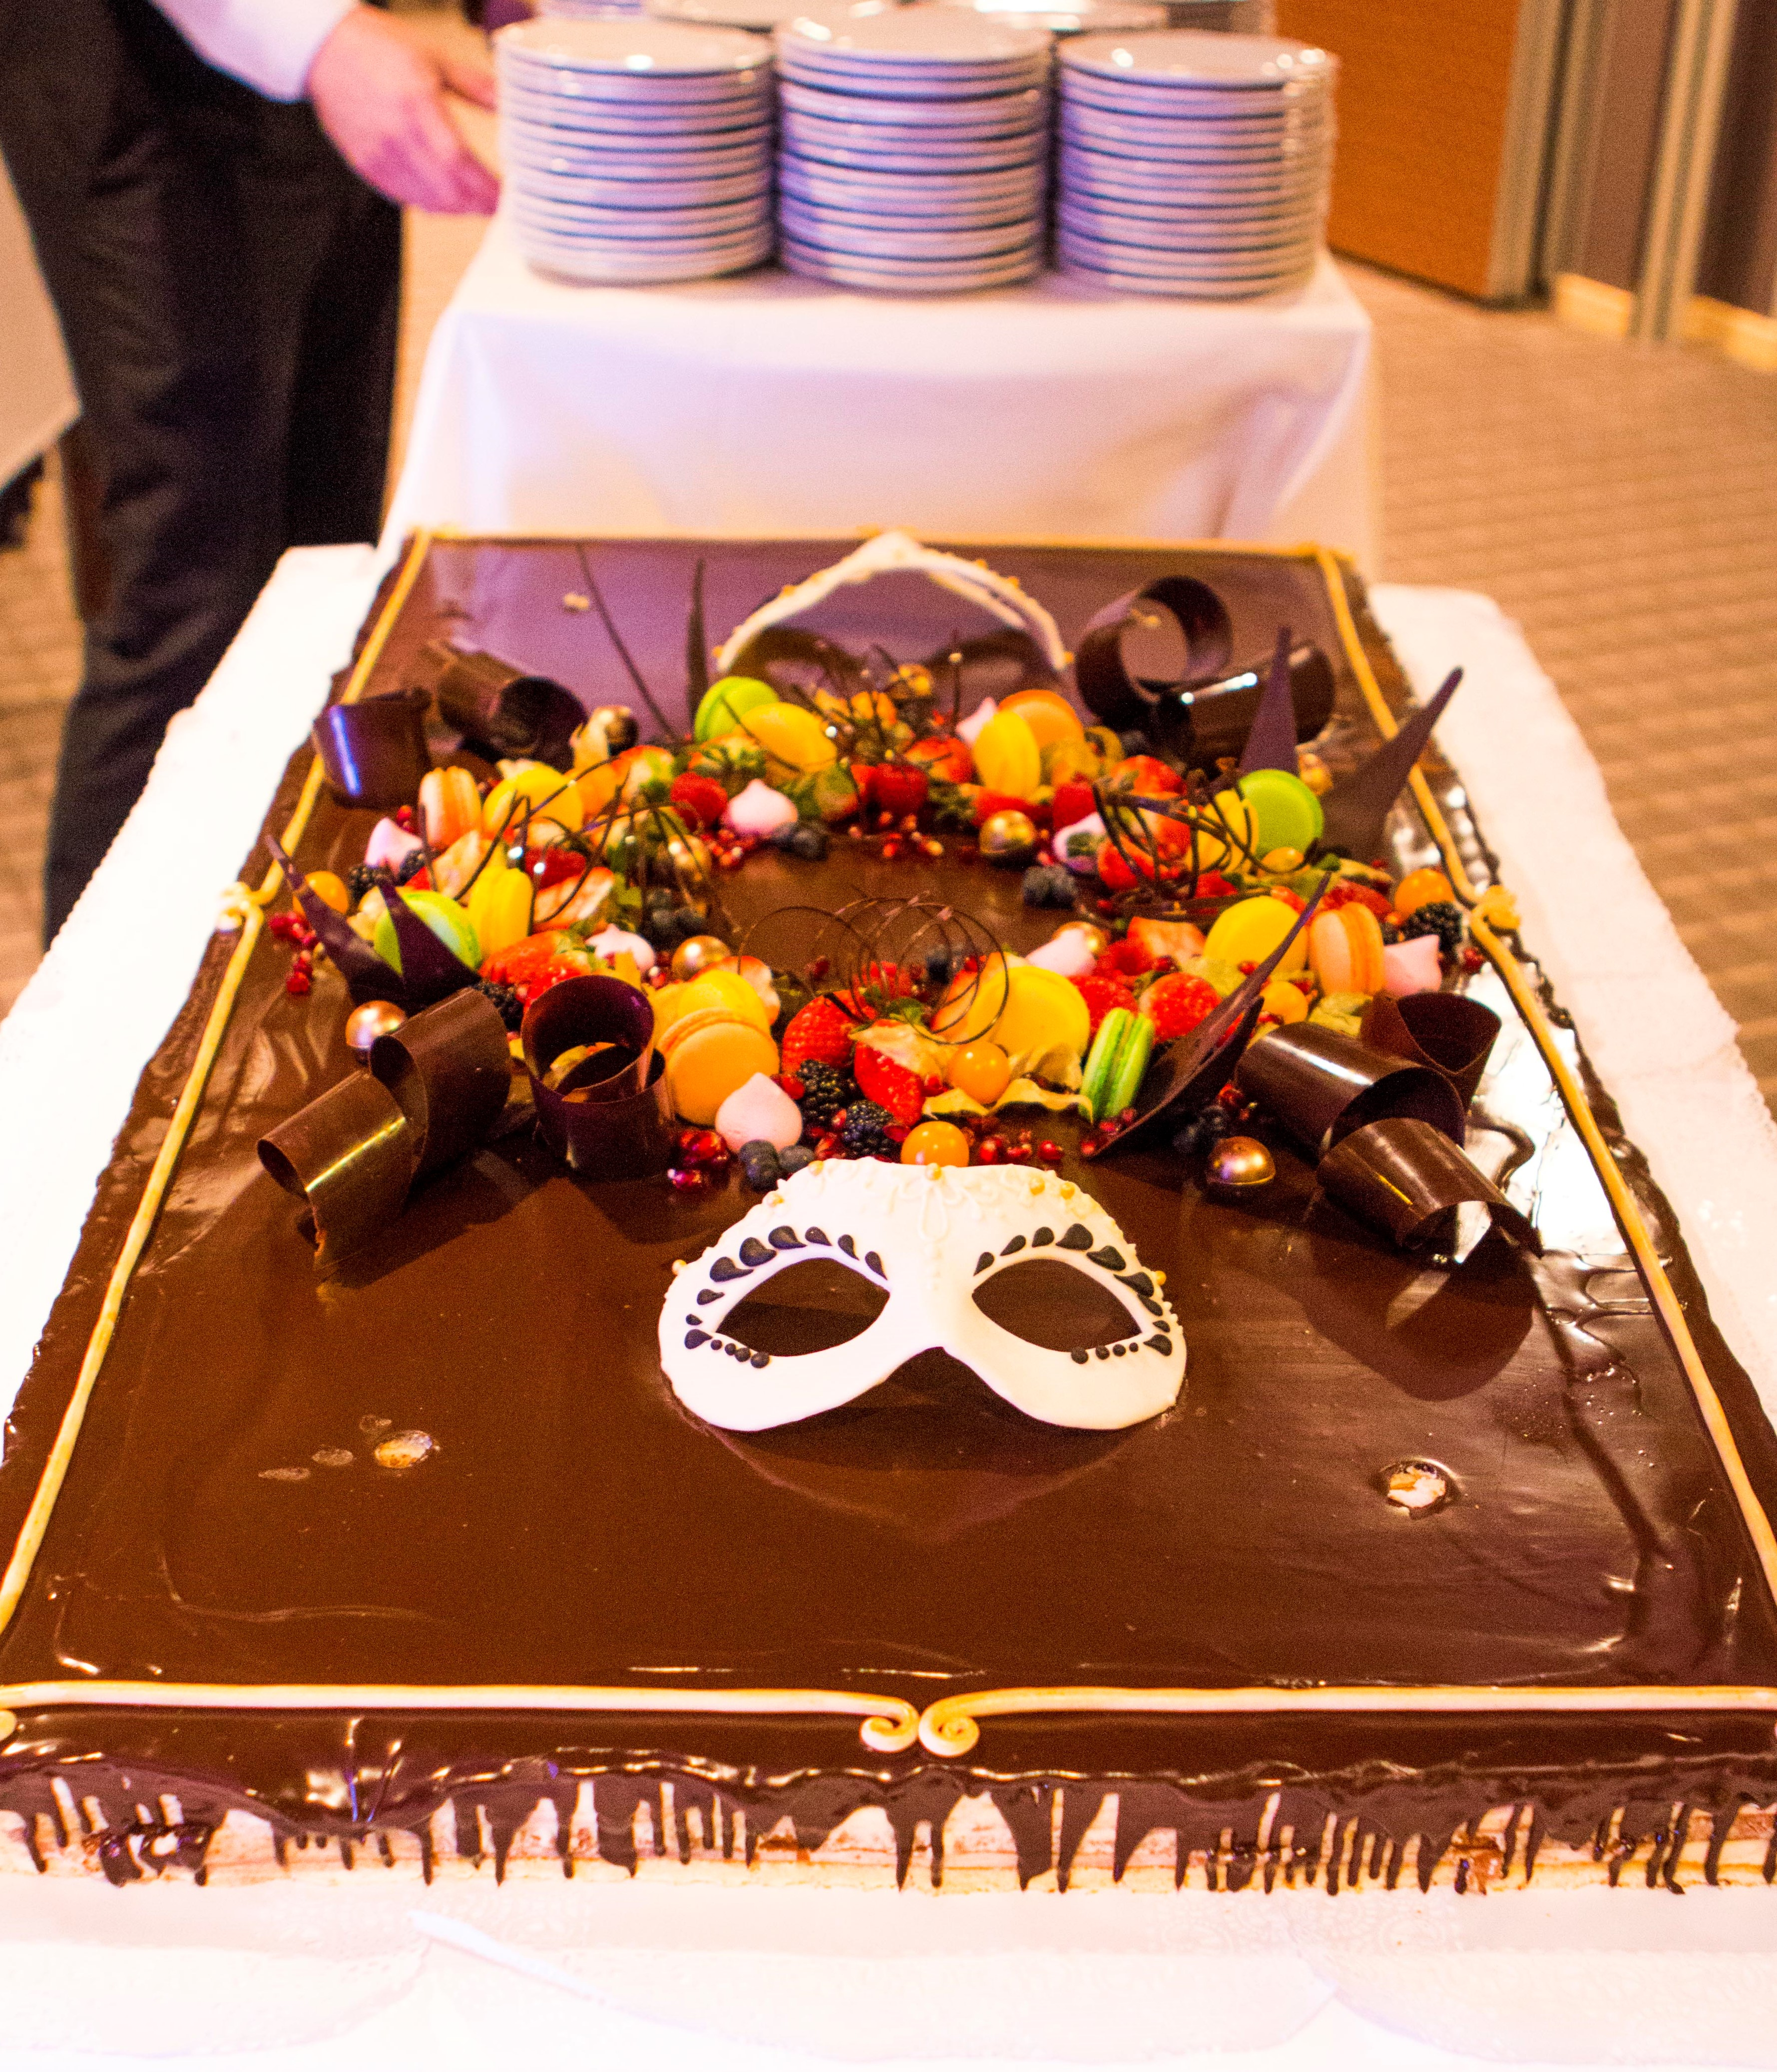 Specially Decorated Cakes In Tallinn